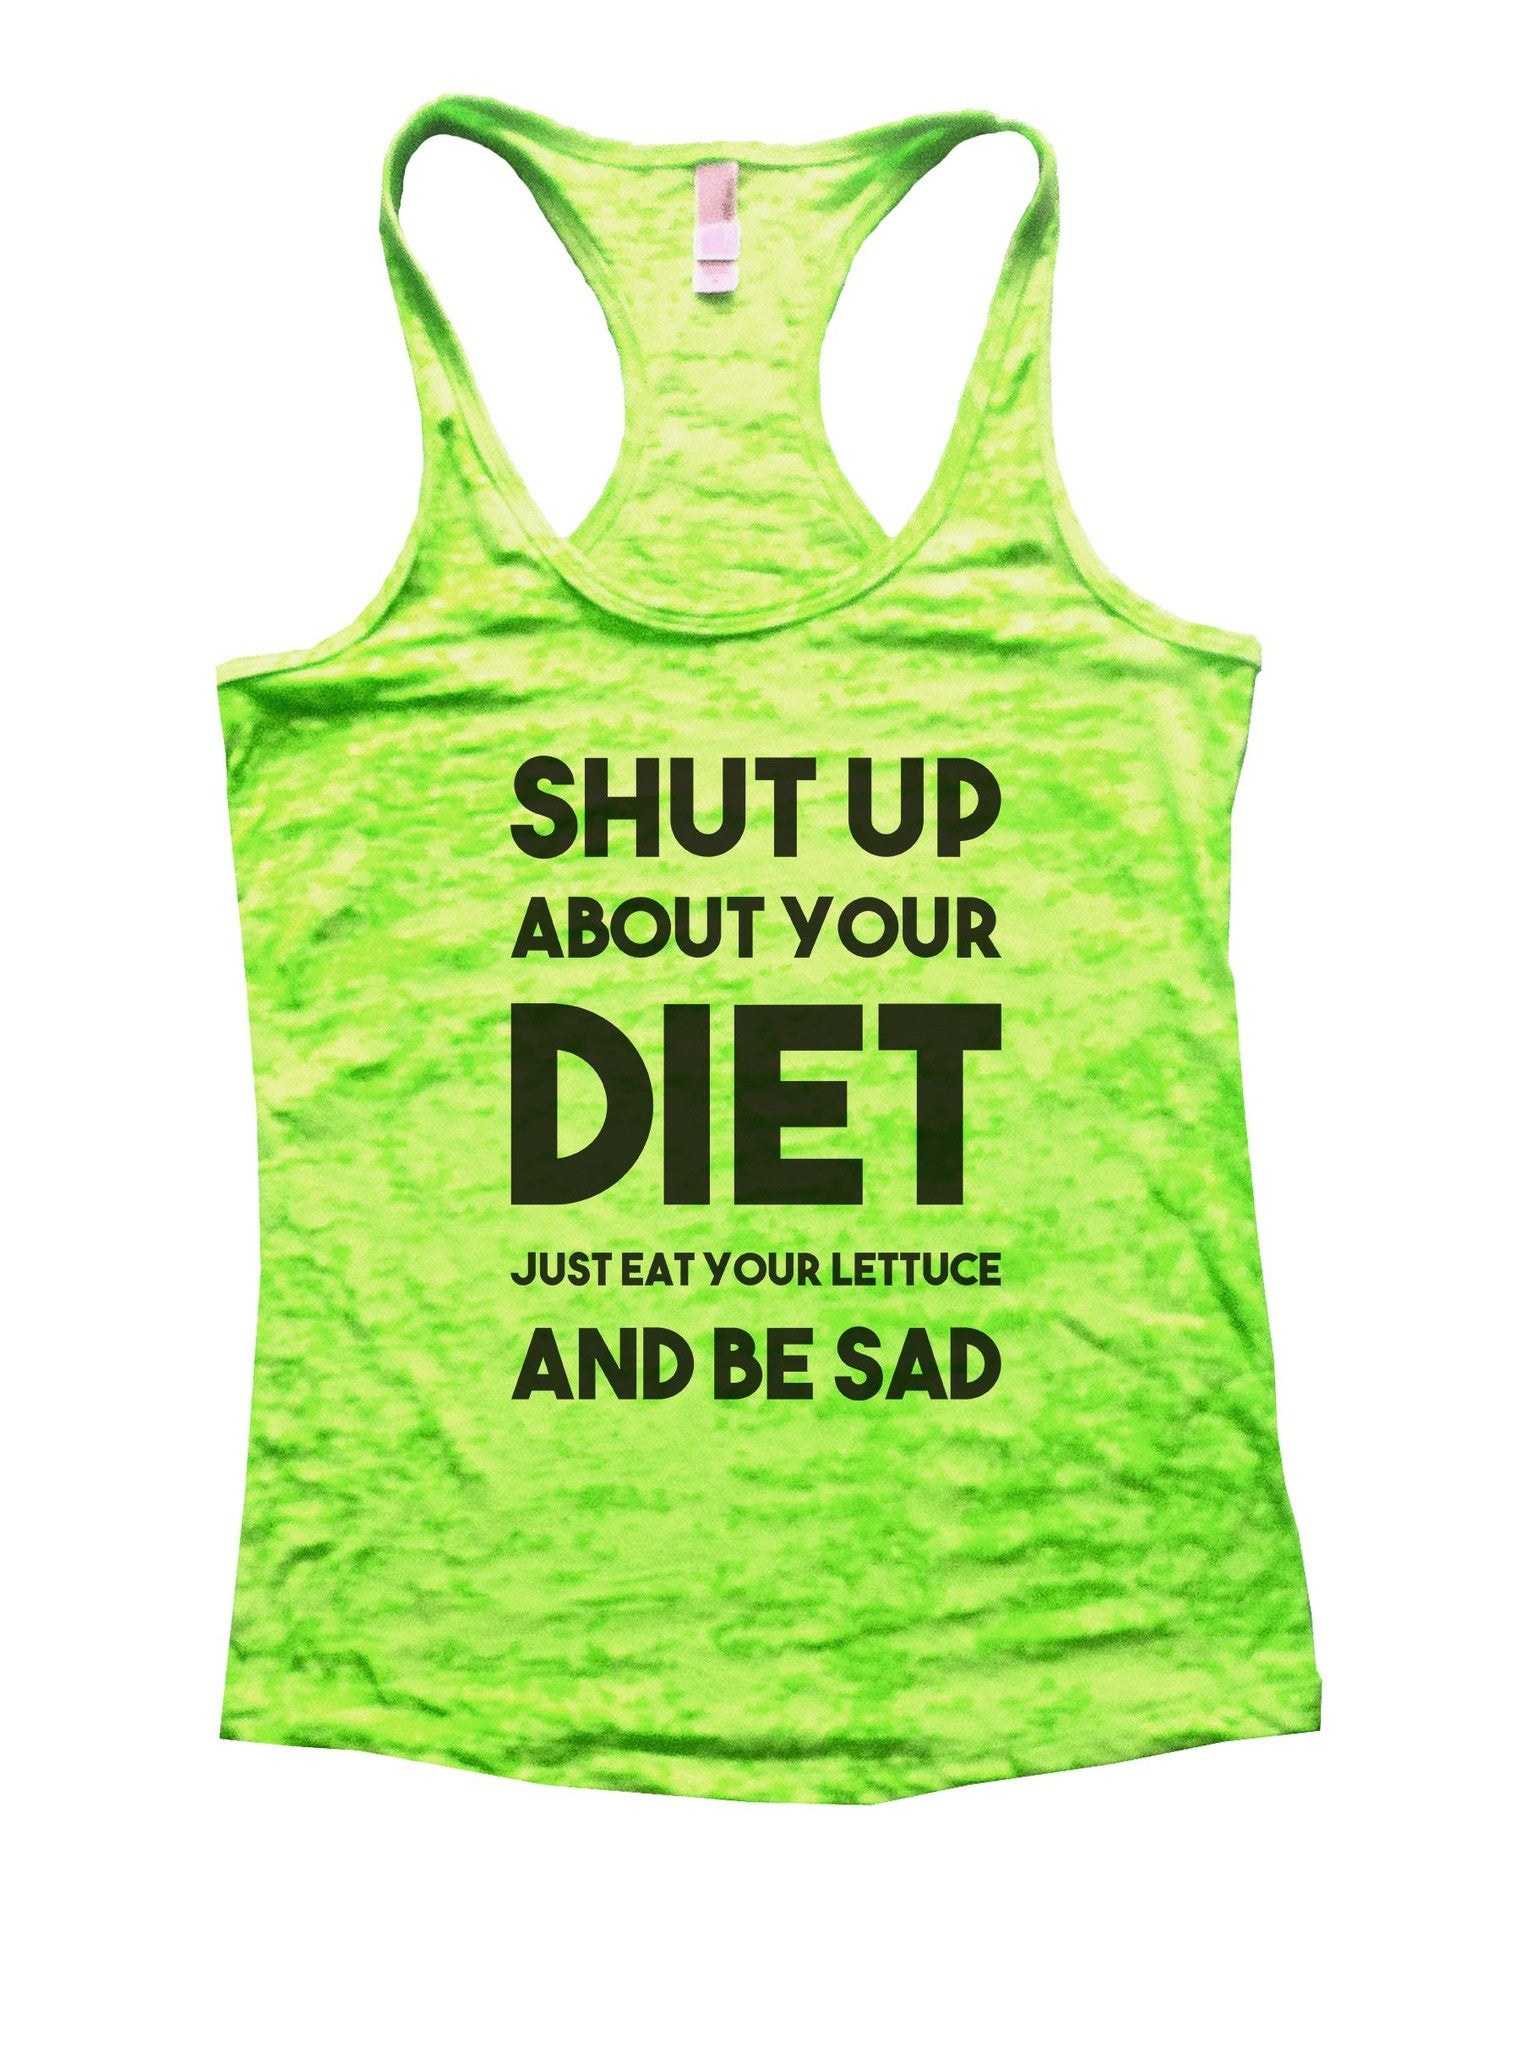 Shut Up About Your Diet Just Eat Your Lettuce And Be Sad Burnout Tank Top By BurnoutTankTops.com - 856 - Funny Shirts Tank Tops Burnouts and Triblends  - 1